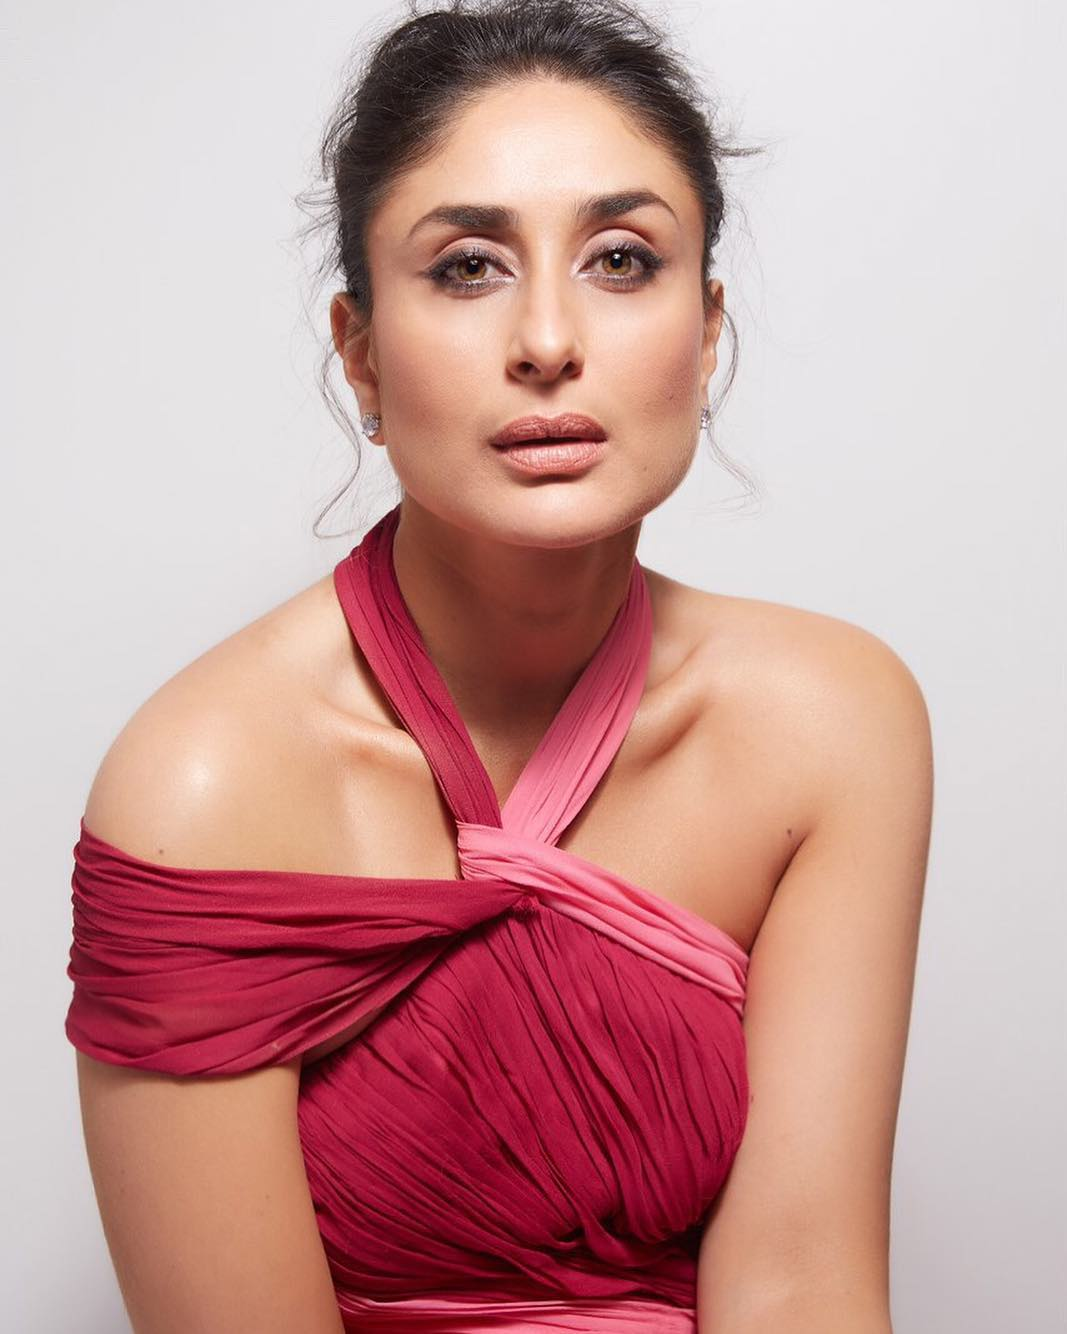 4-kareena-kapoor-minimal-makeup-look